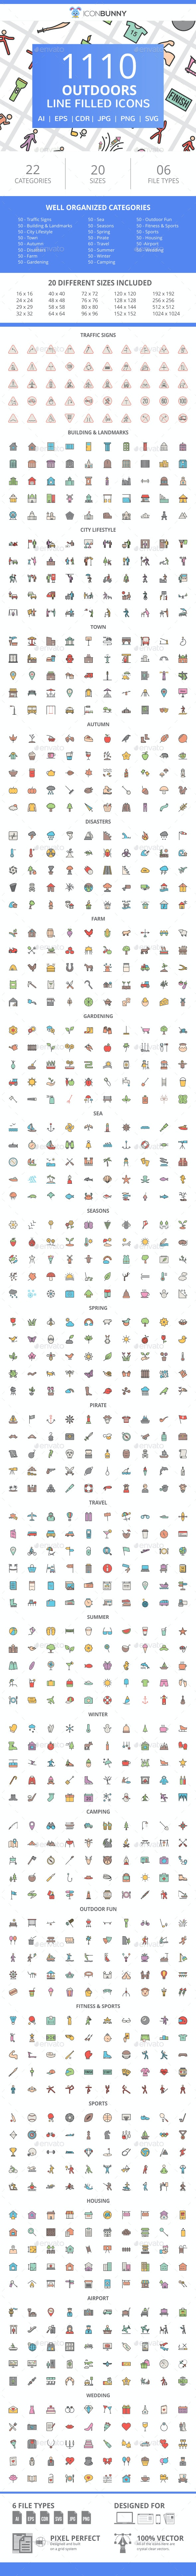 1110 Outdoors FIlled Line Icons - Icons